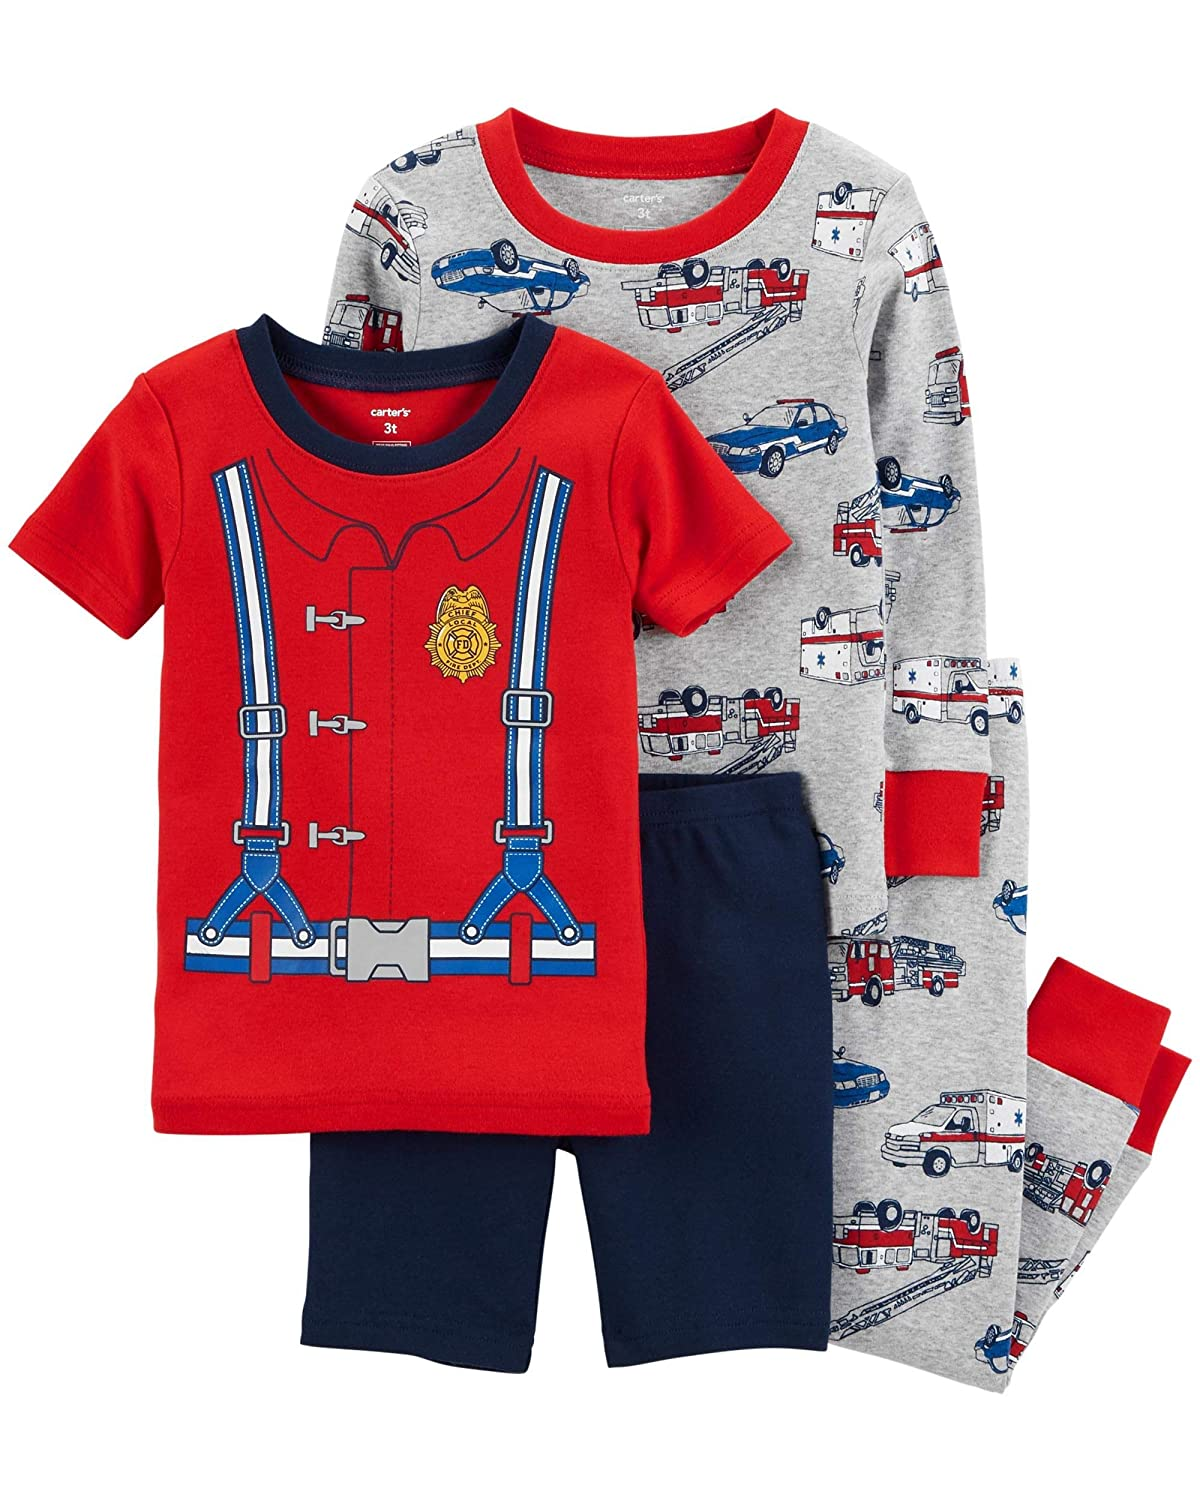 Carter's Toddler Boys 4 Pc Pajama PJs Sleep Play Sleep Snug fit Cotton Firefighter Hero 10